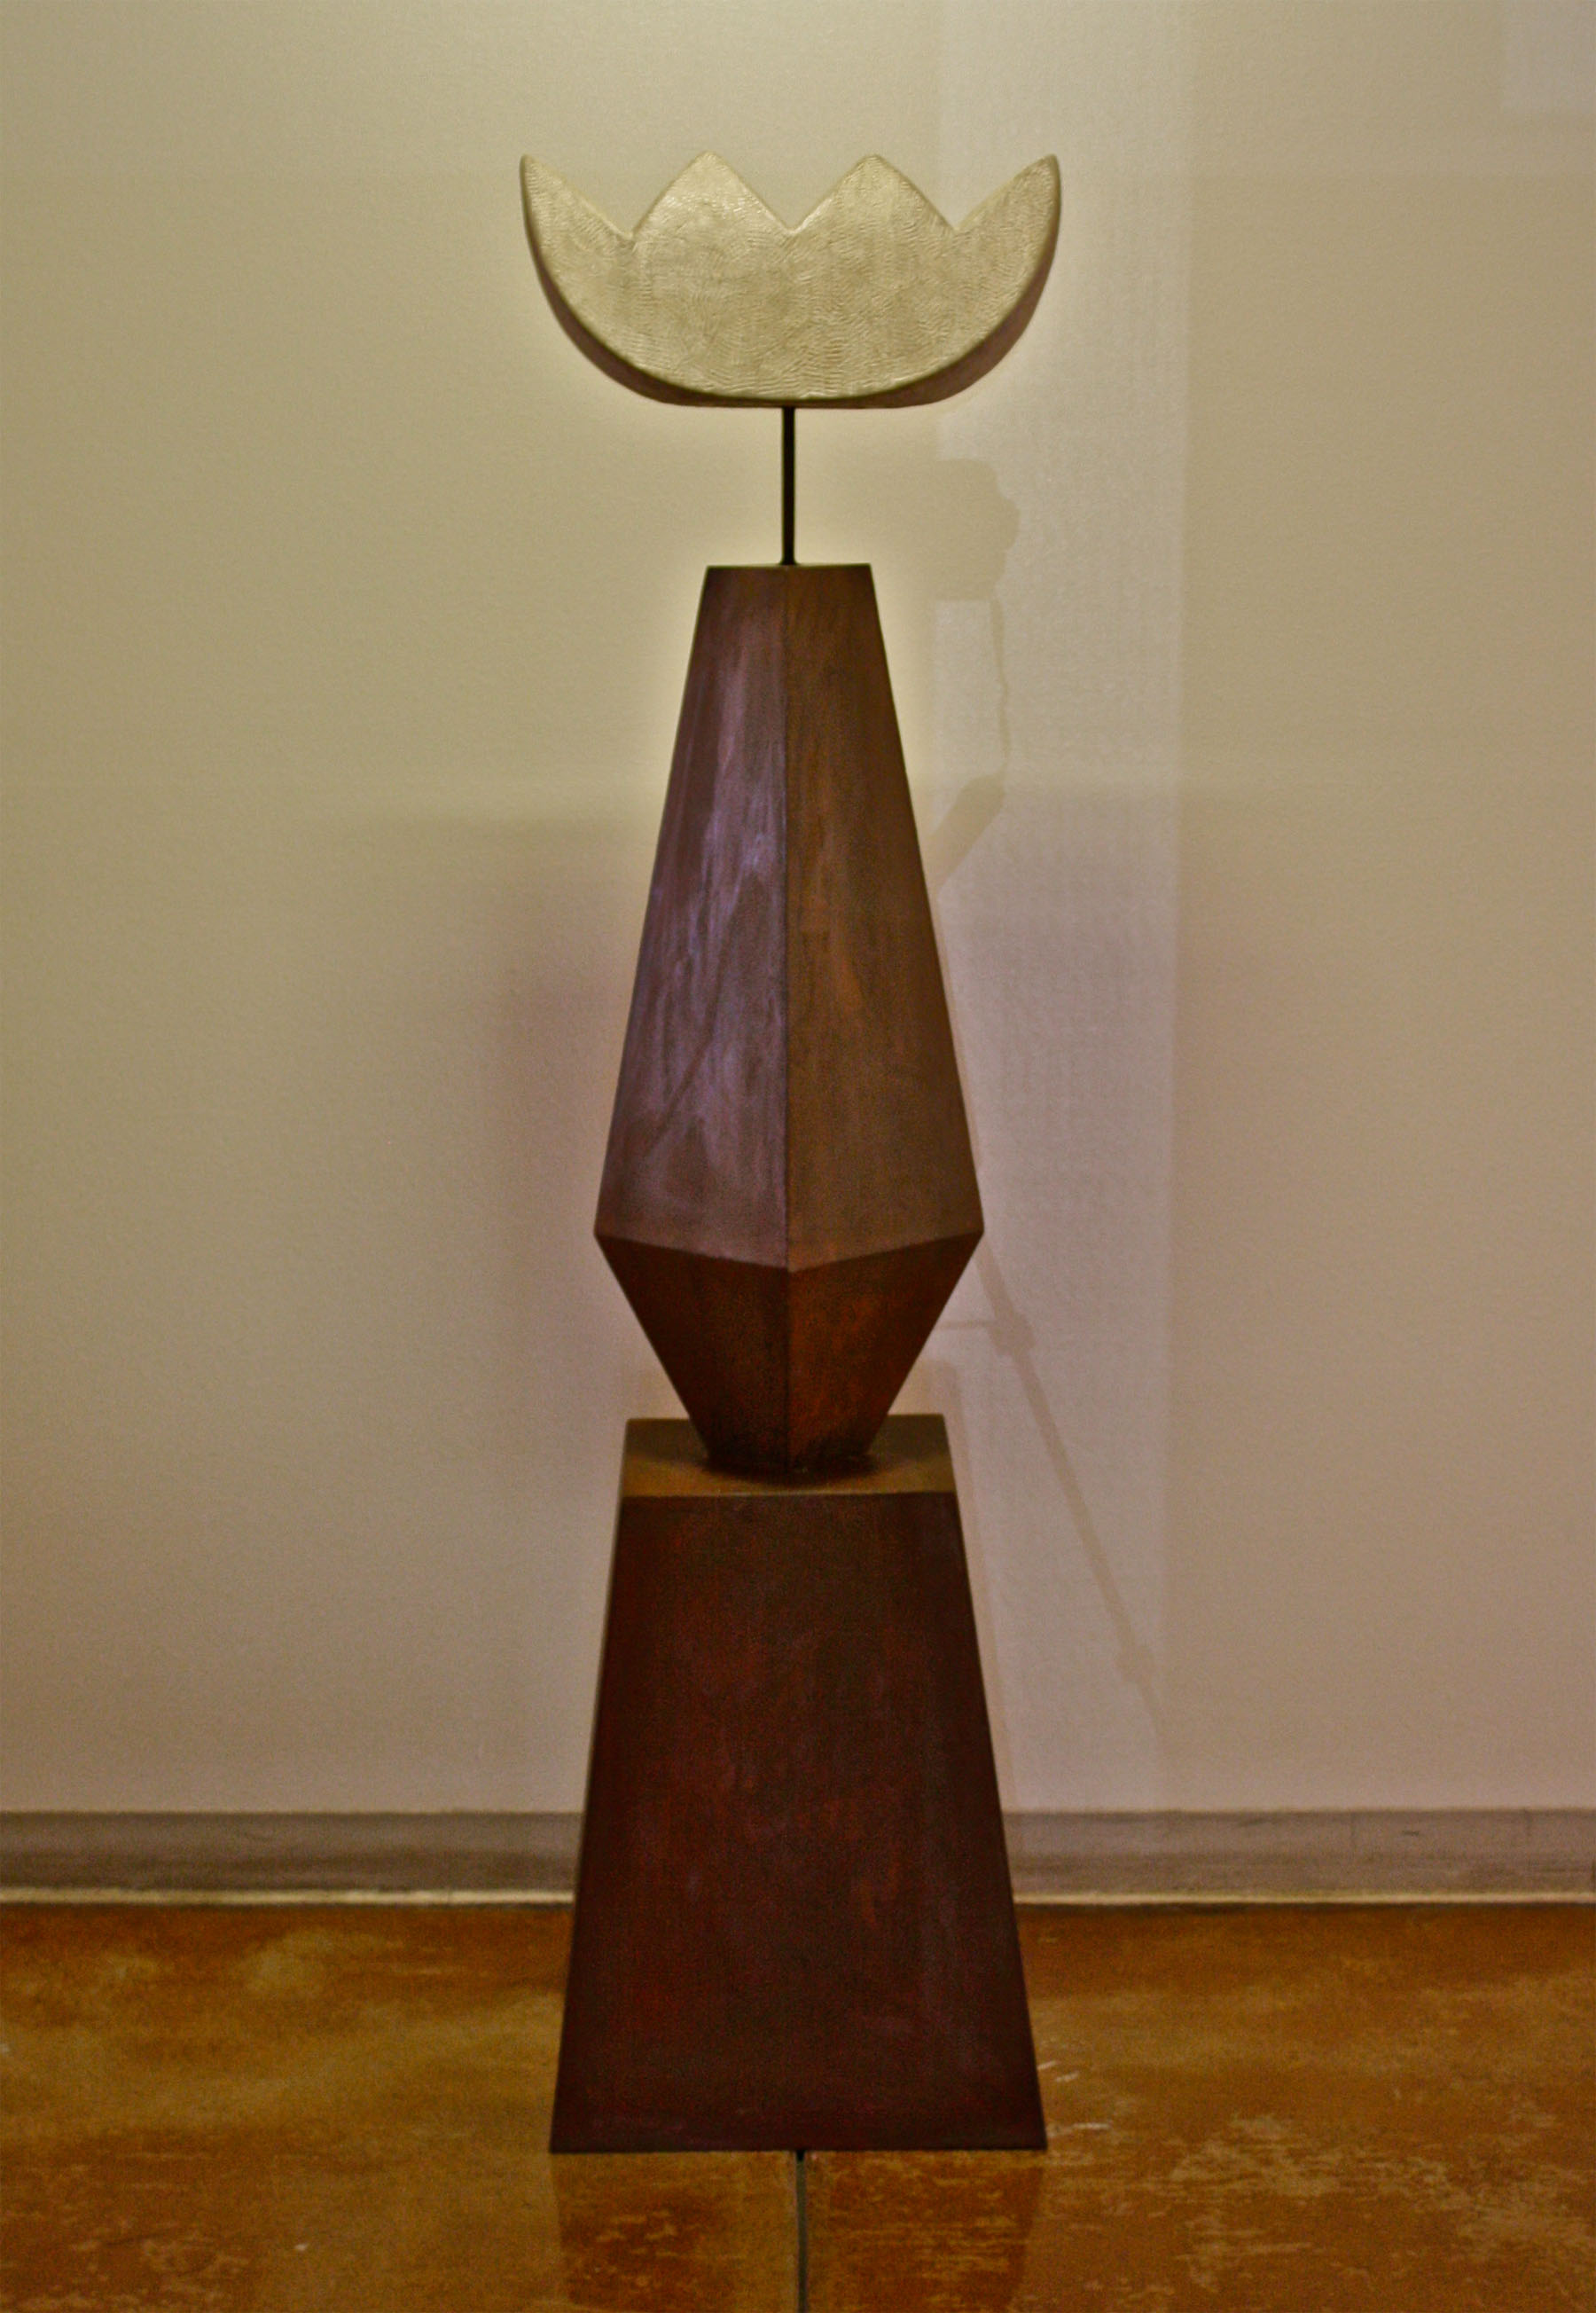 2011, 71 x 18 x 18 in. Steel and limestone